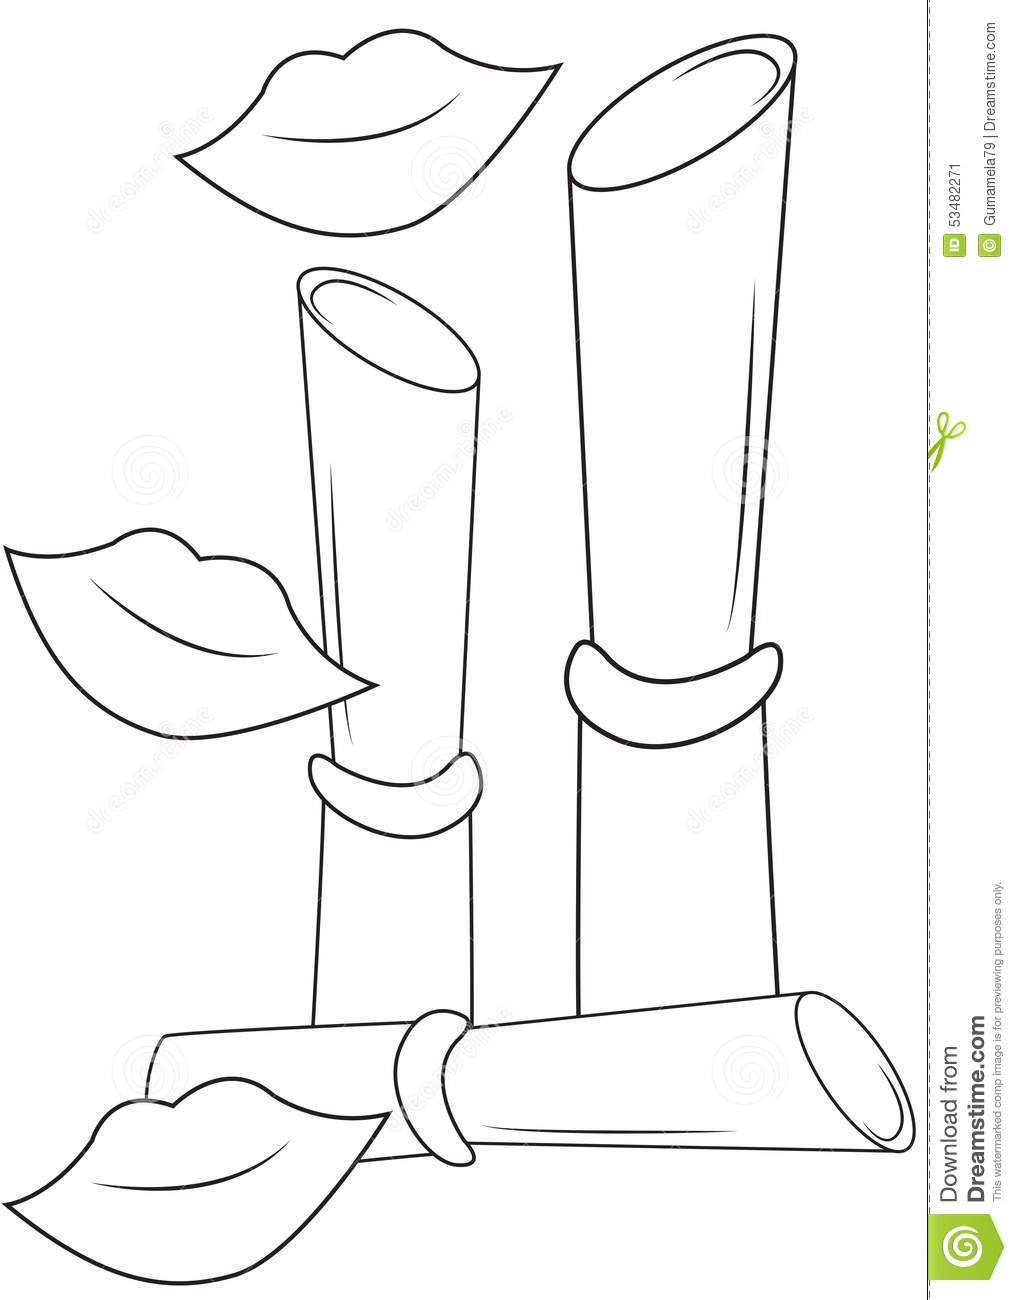 Lipsticks coloring page stock illustration image 53482271 for Lipstick coloring pages